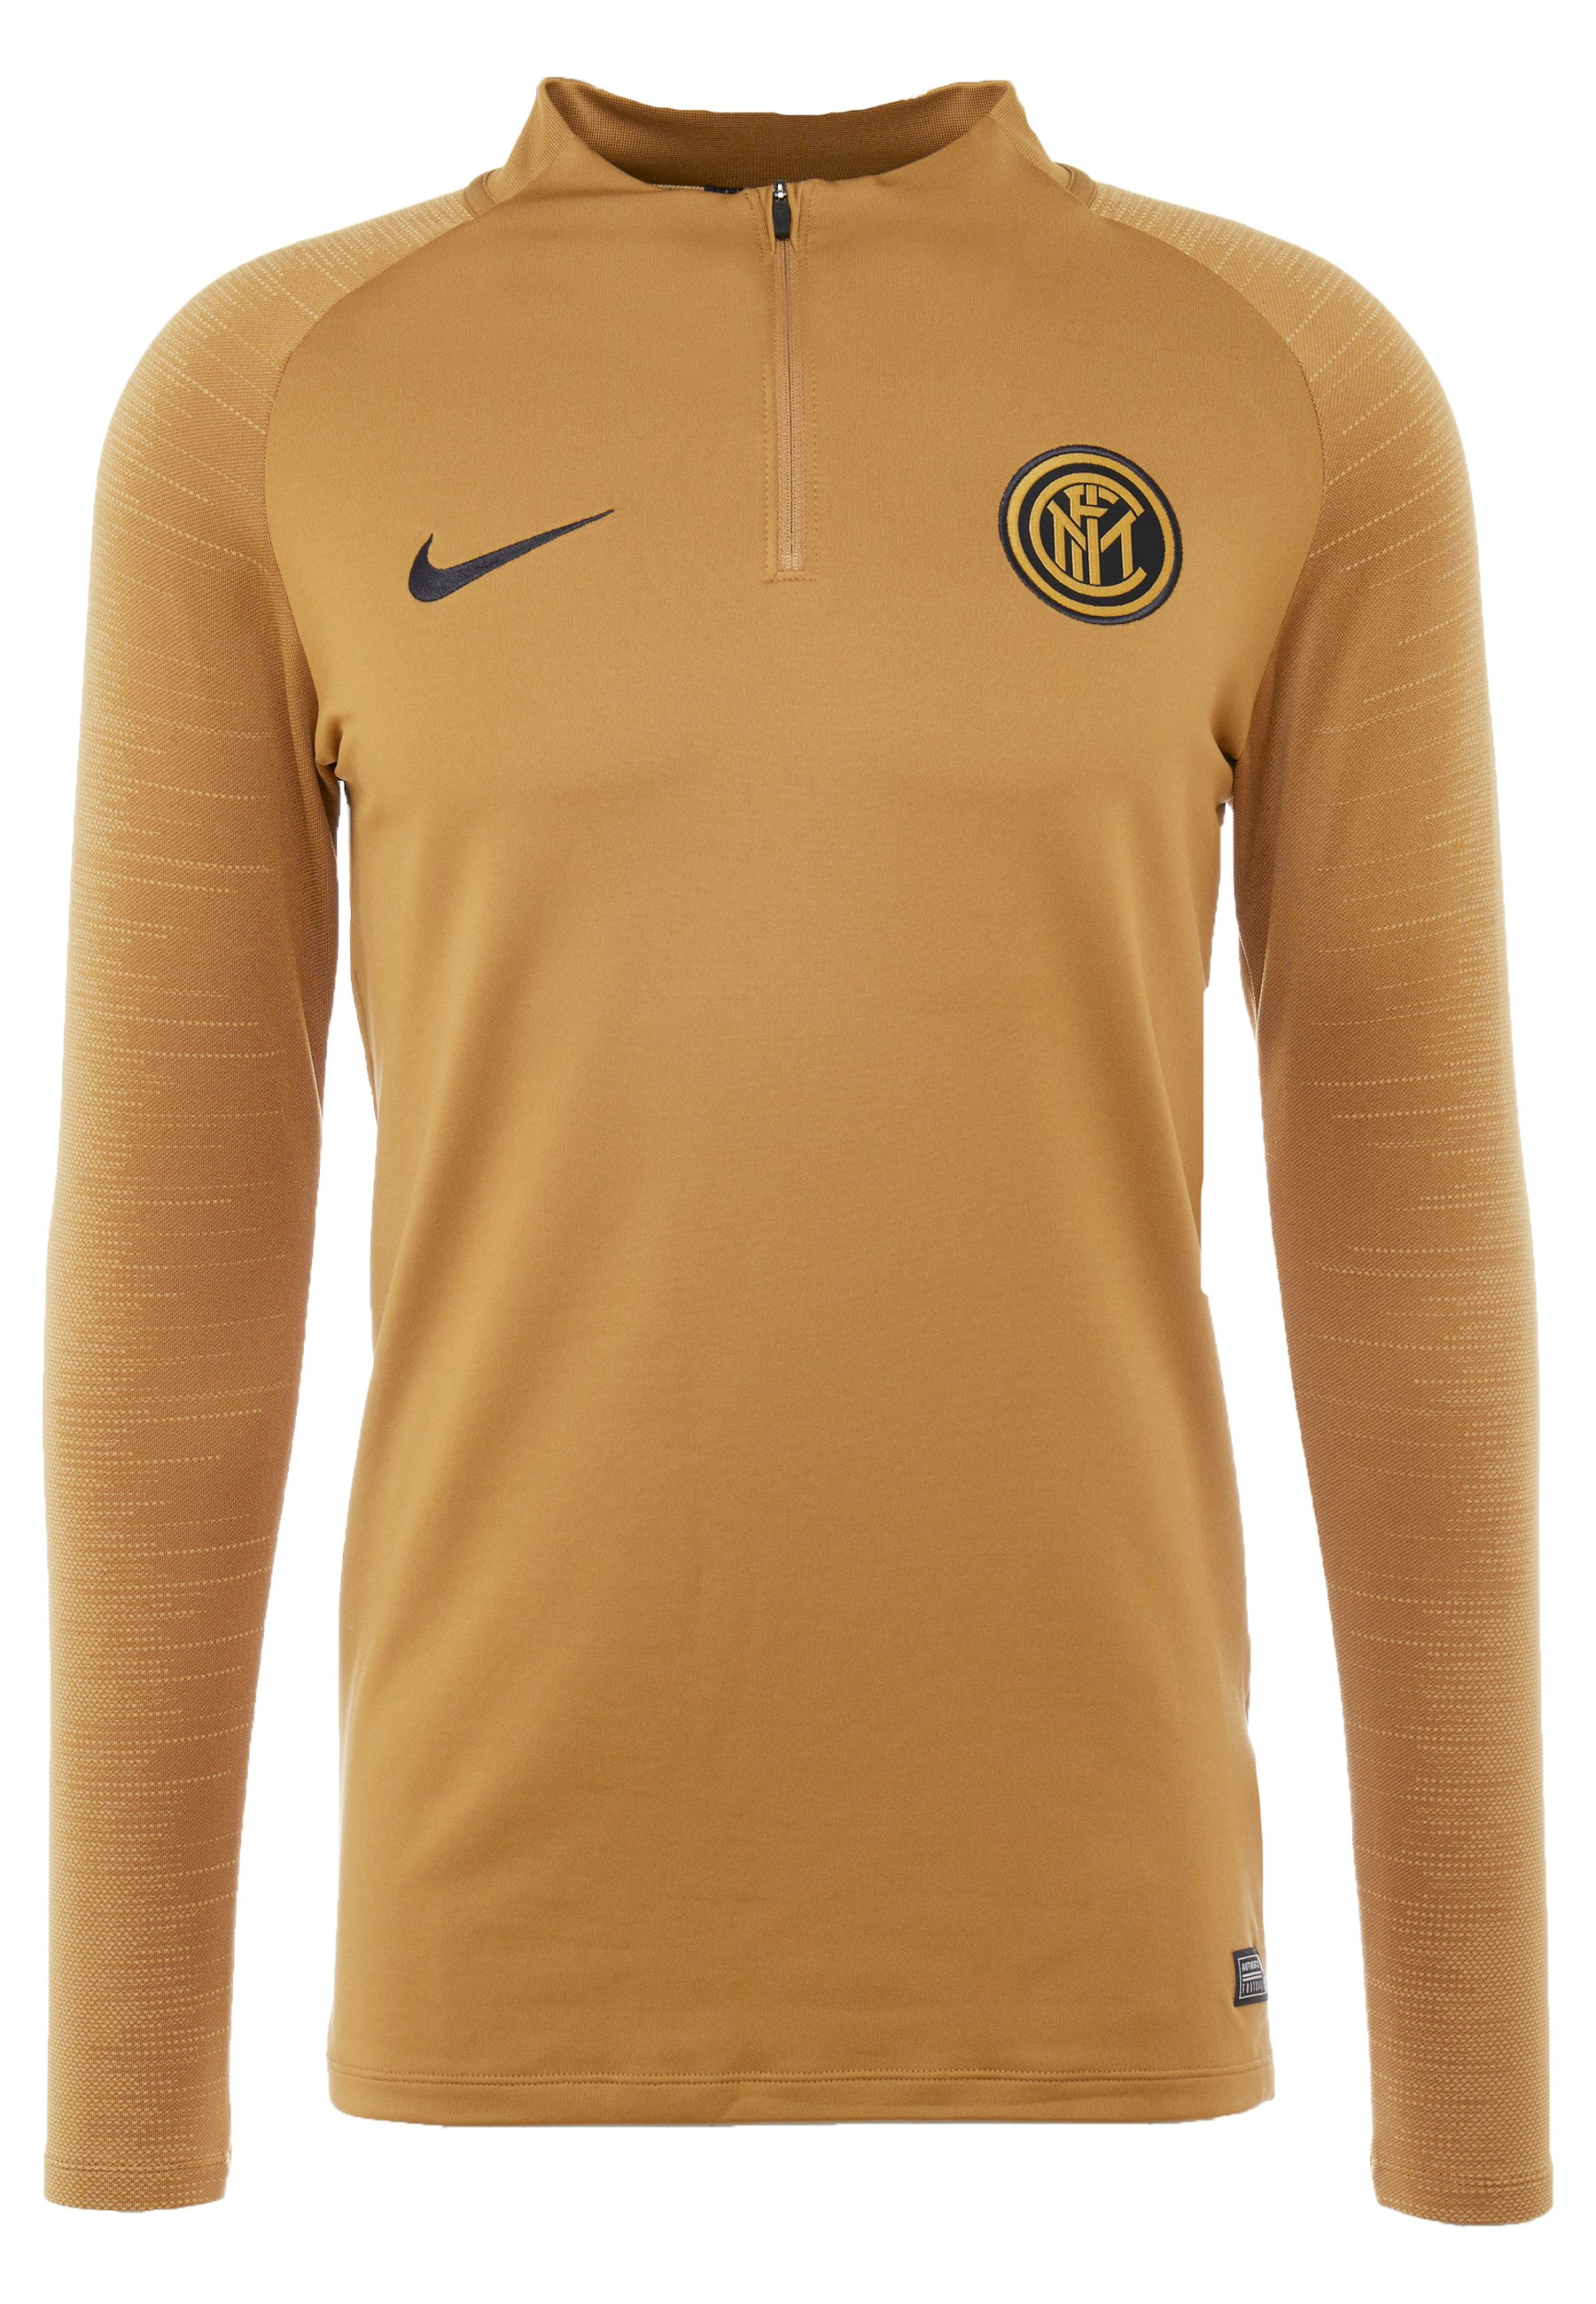 Nike Performance Inter Mailand Dry - Club Wear Muted Bronze/truly Gold/black